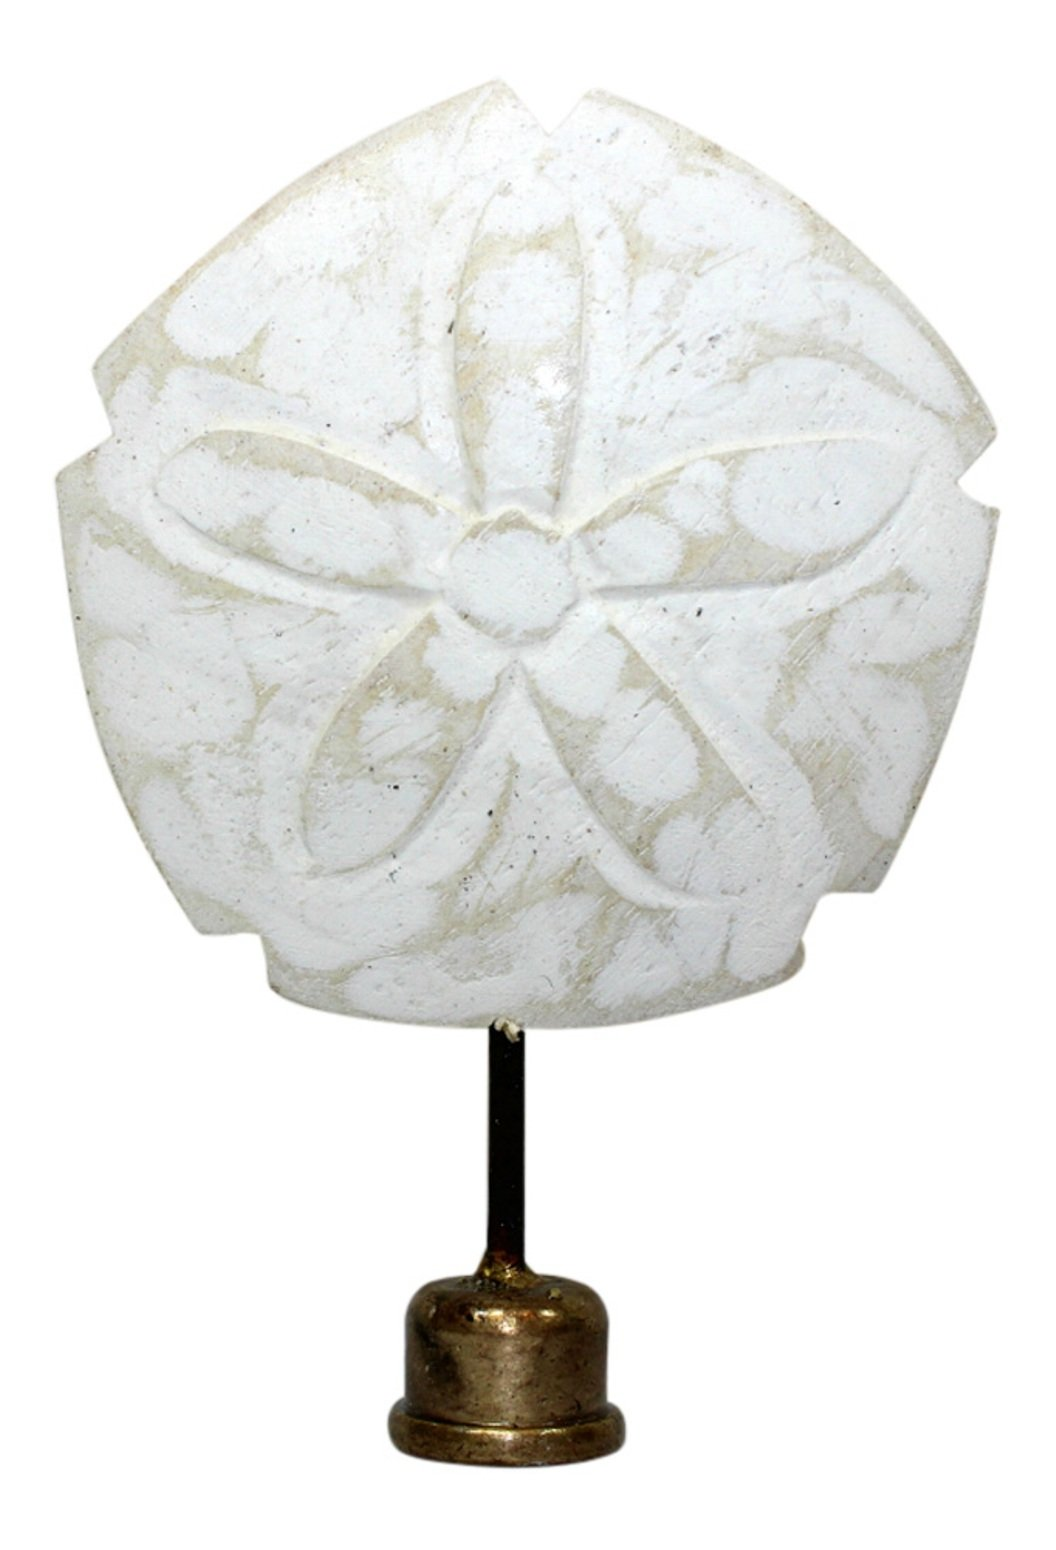 TIM Coastal Sand Dollar Lamp Finial Hand Carved Painted Whitewashed Wood 4 Inch